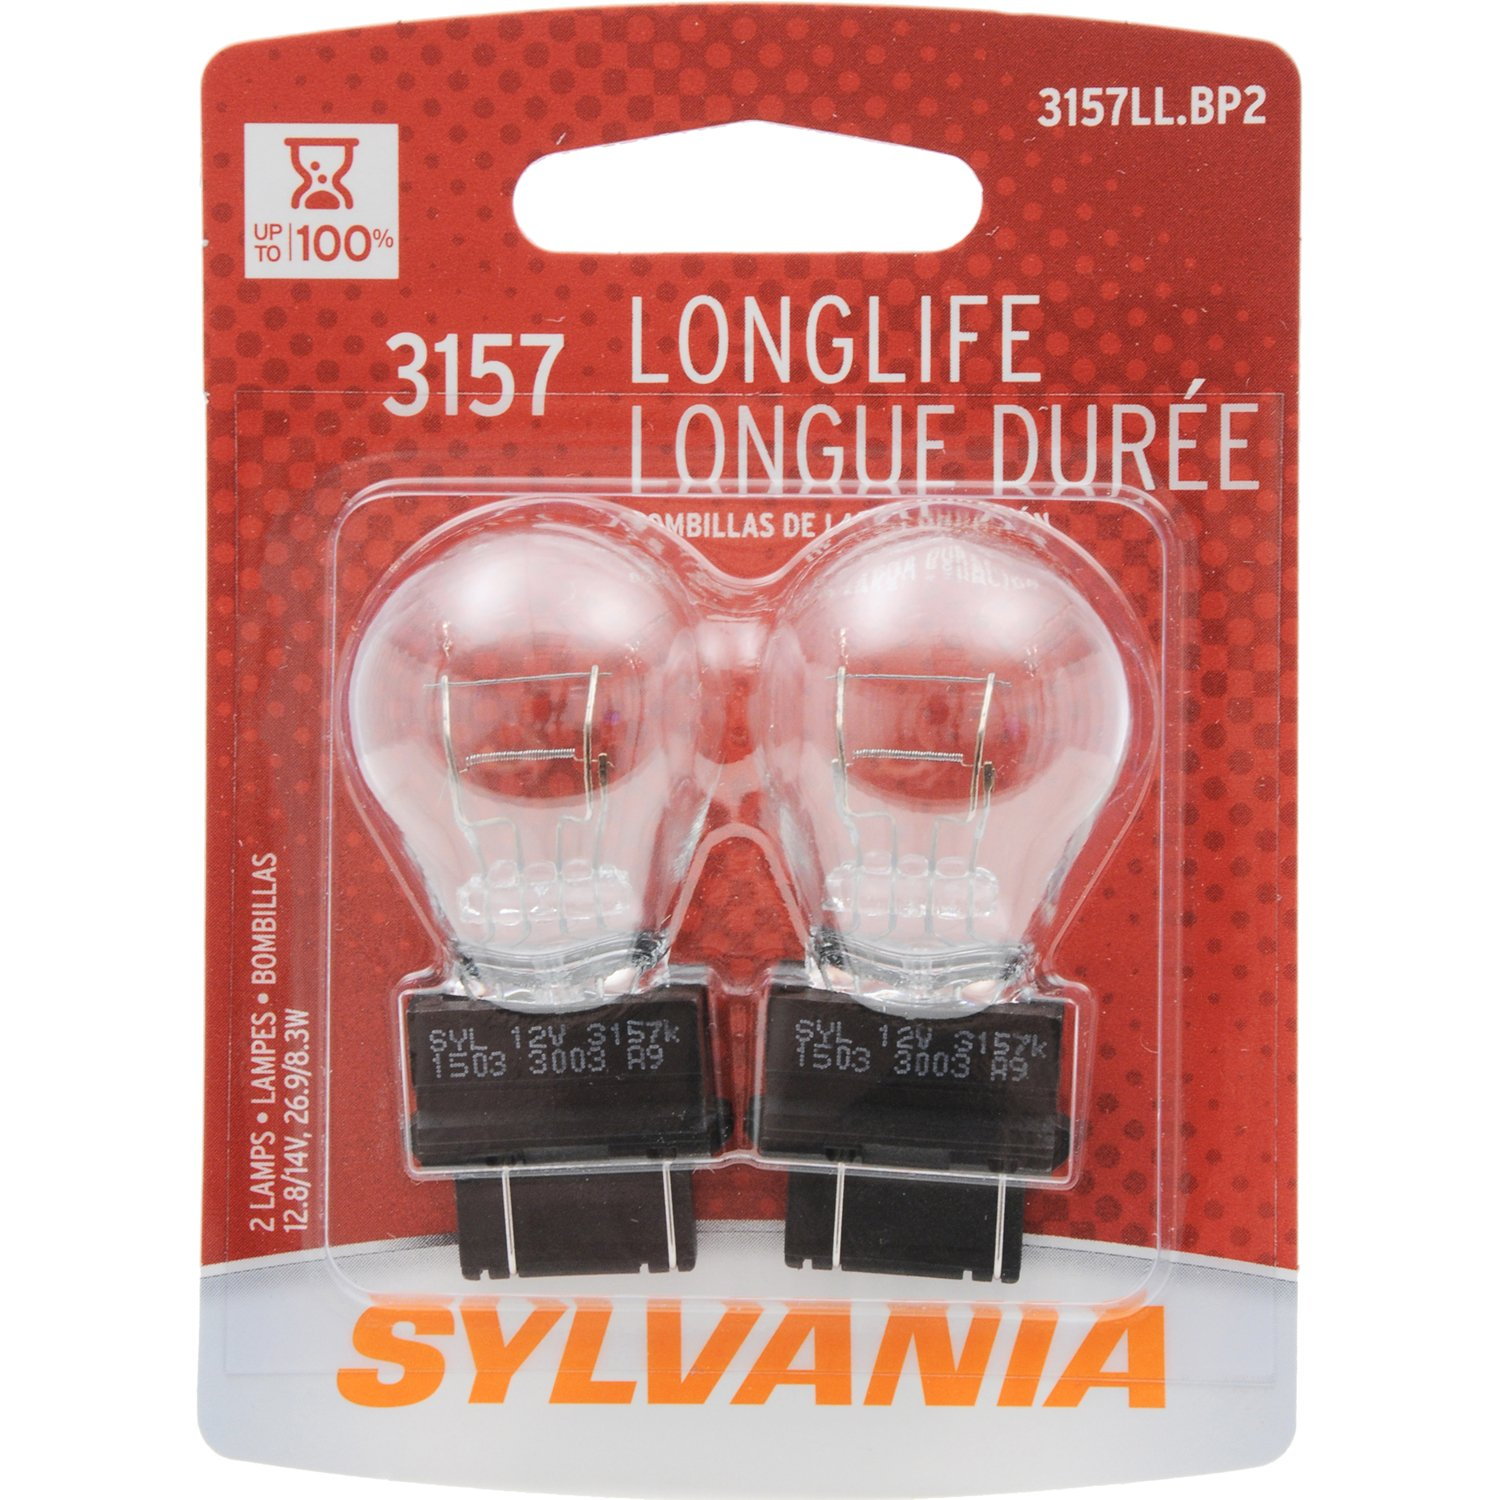 Sylvania 3157 Long Life Miniature Bulb Contains 2 04 Yukon Front Running Lights Wiring Diagram Bulbs Automotive